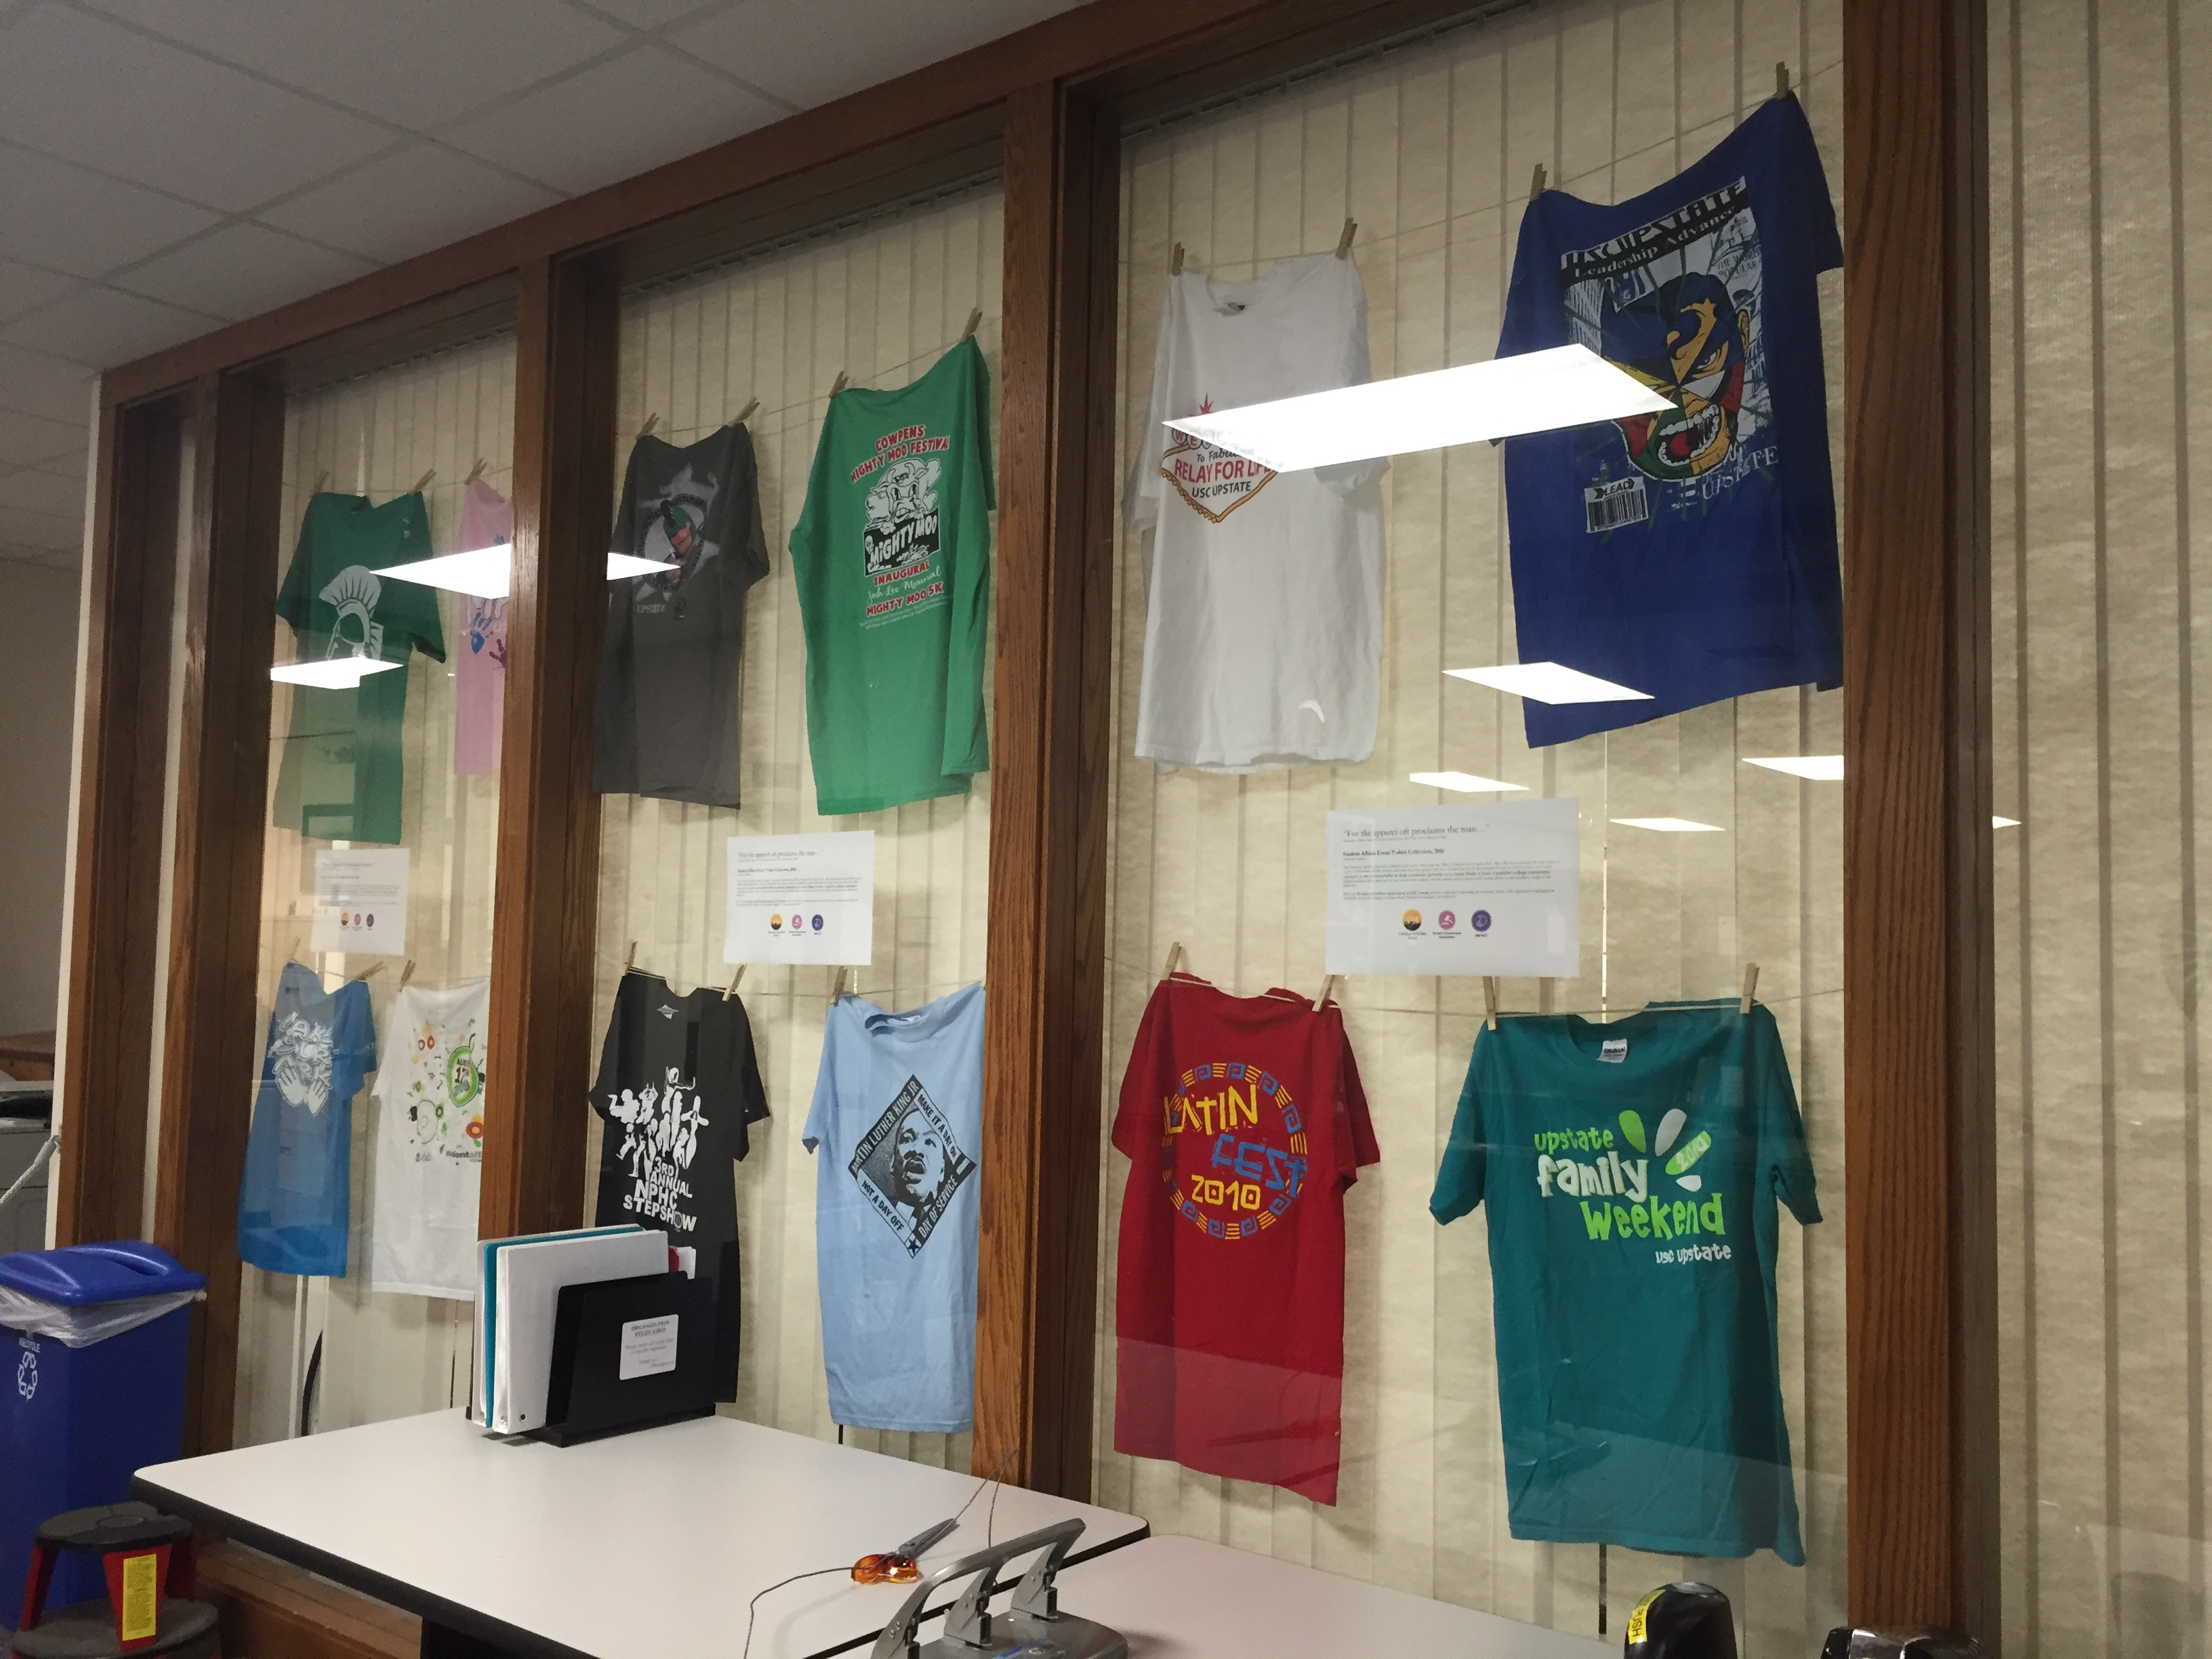 Wide angle view of t-shirts displayed on mock clothesline.